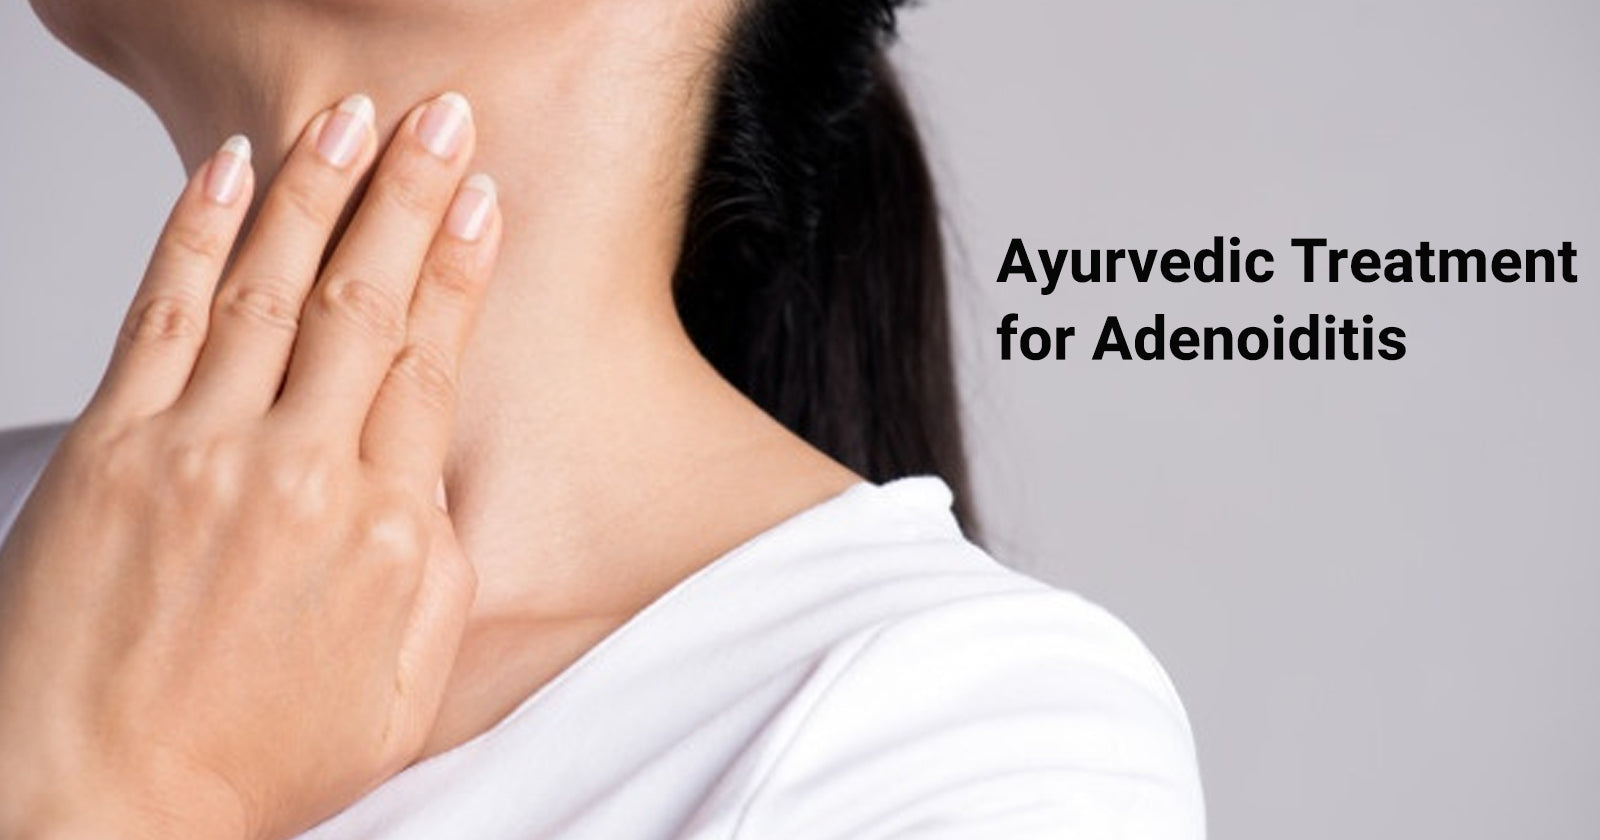 ayurvedic treatment for adenoiditis